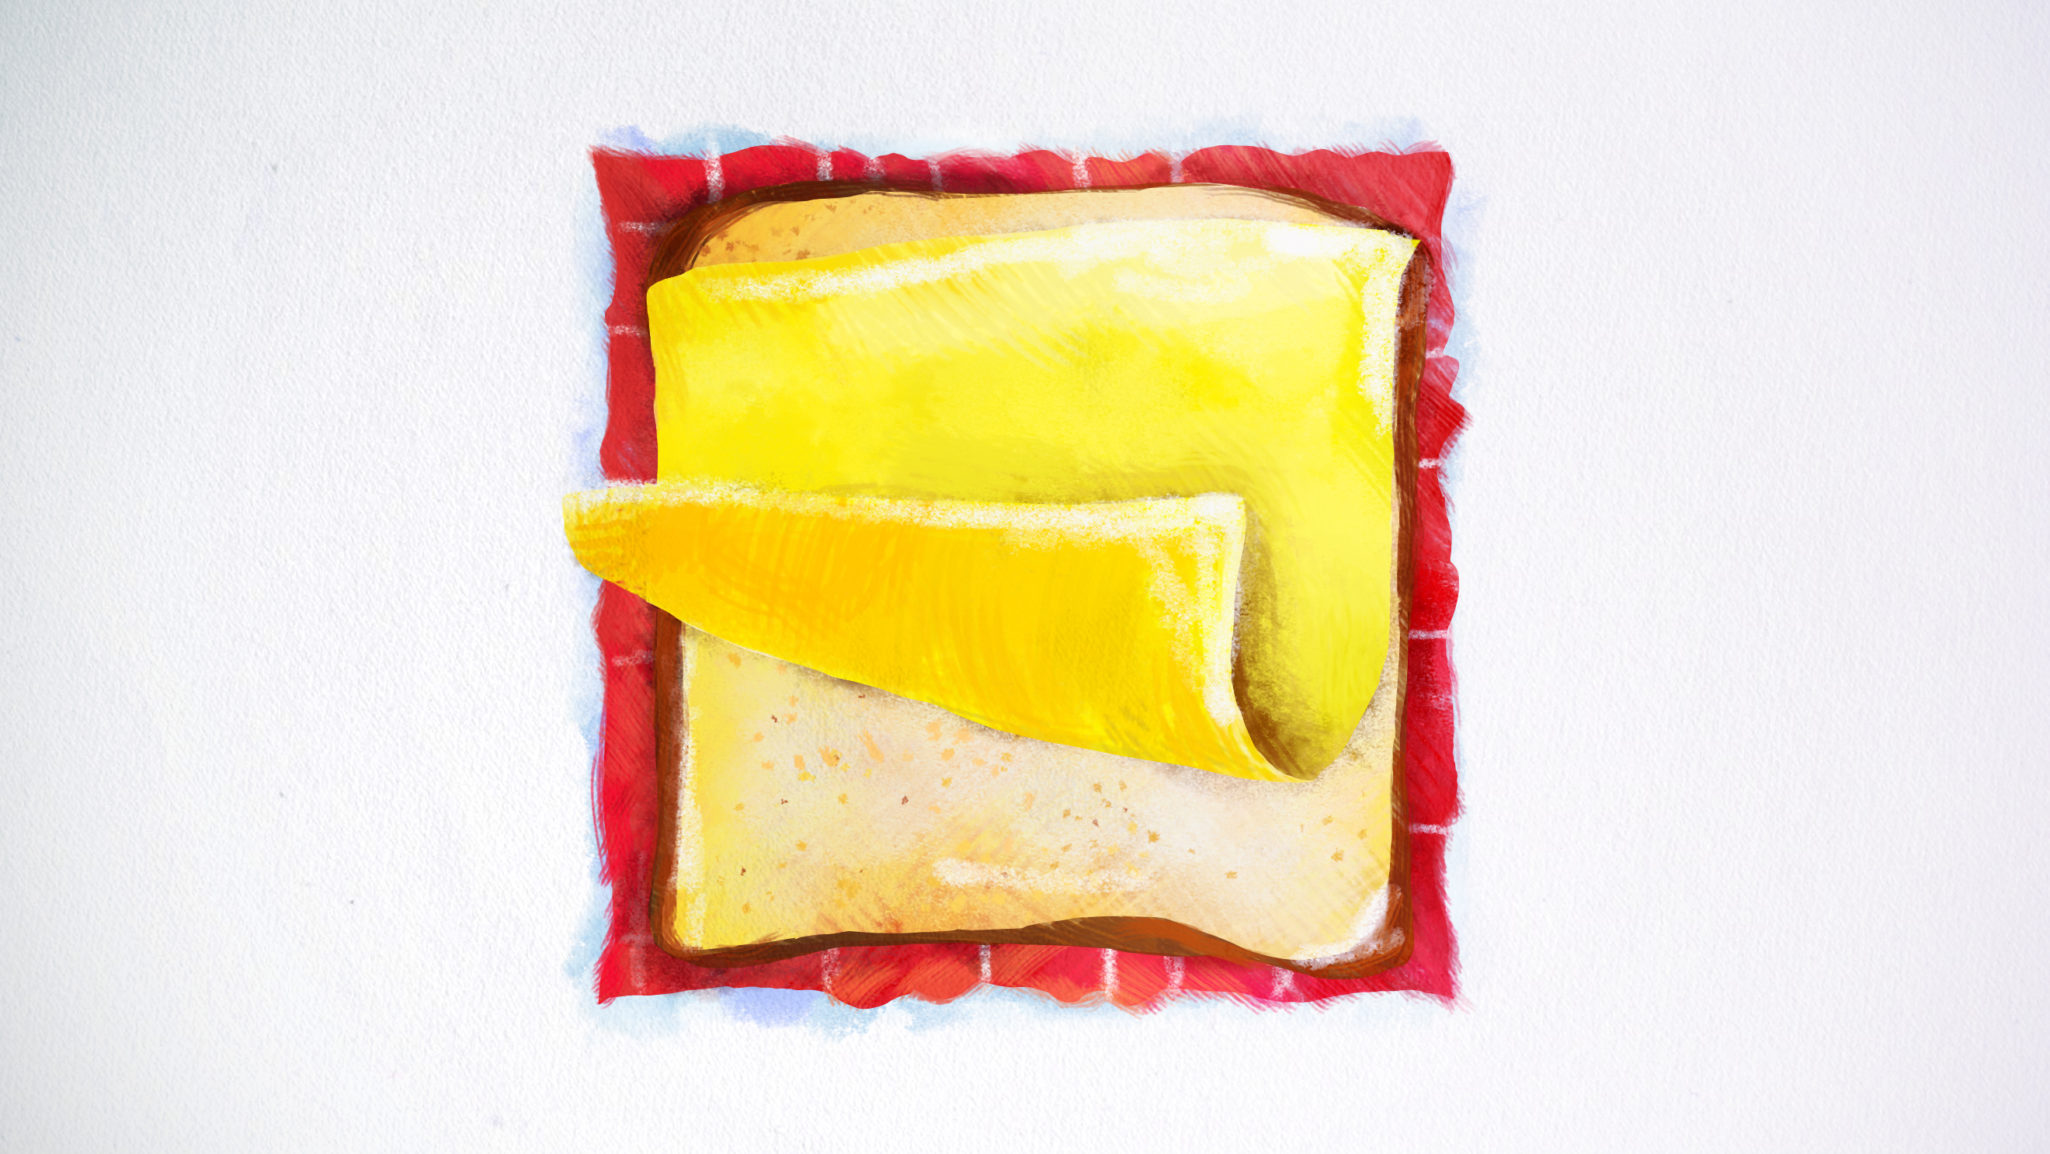 Styleframe hand painted: Bread and cheese